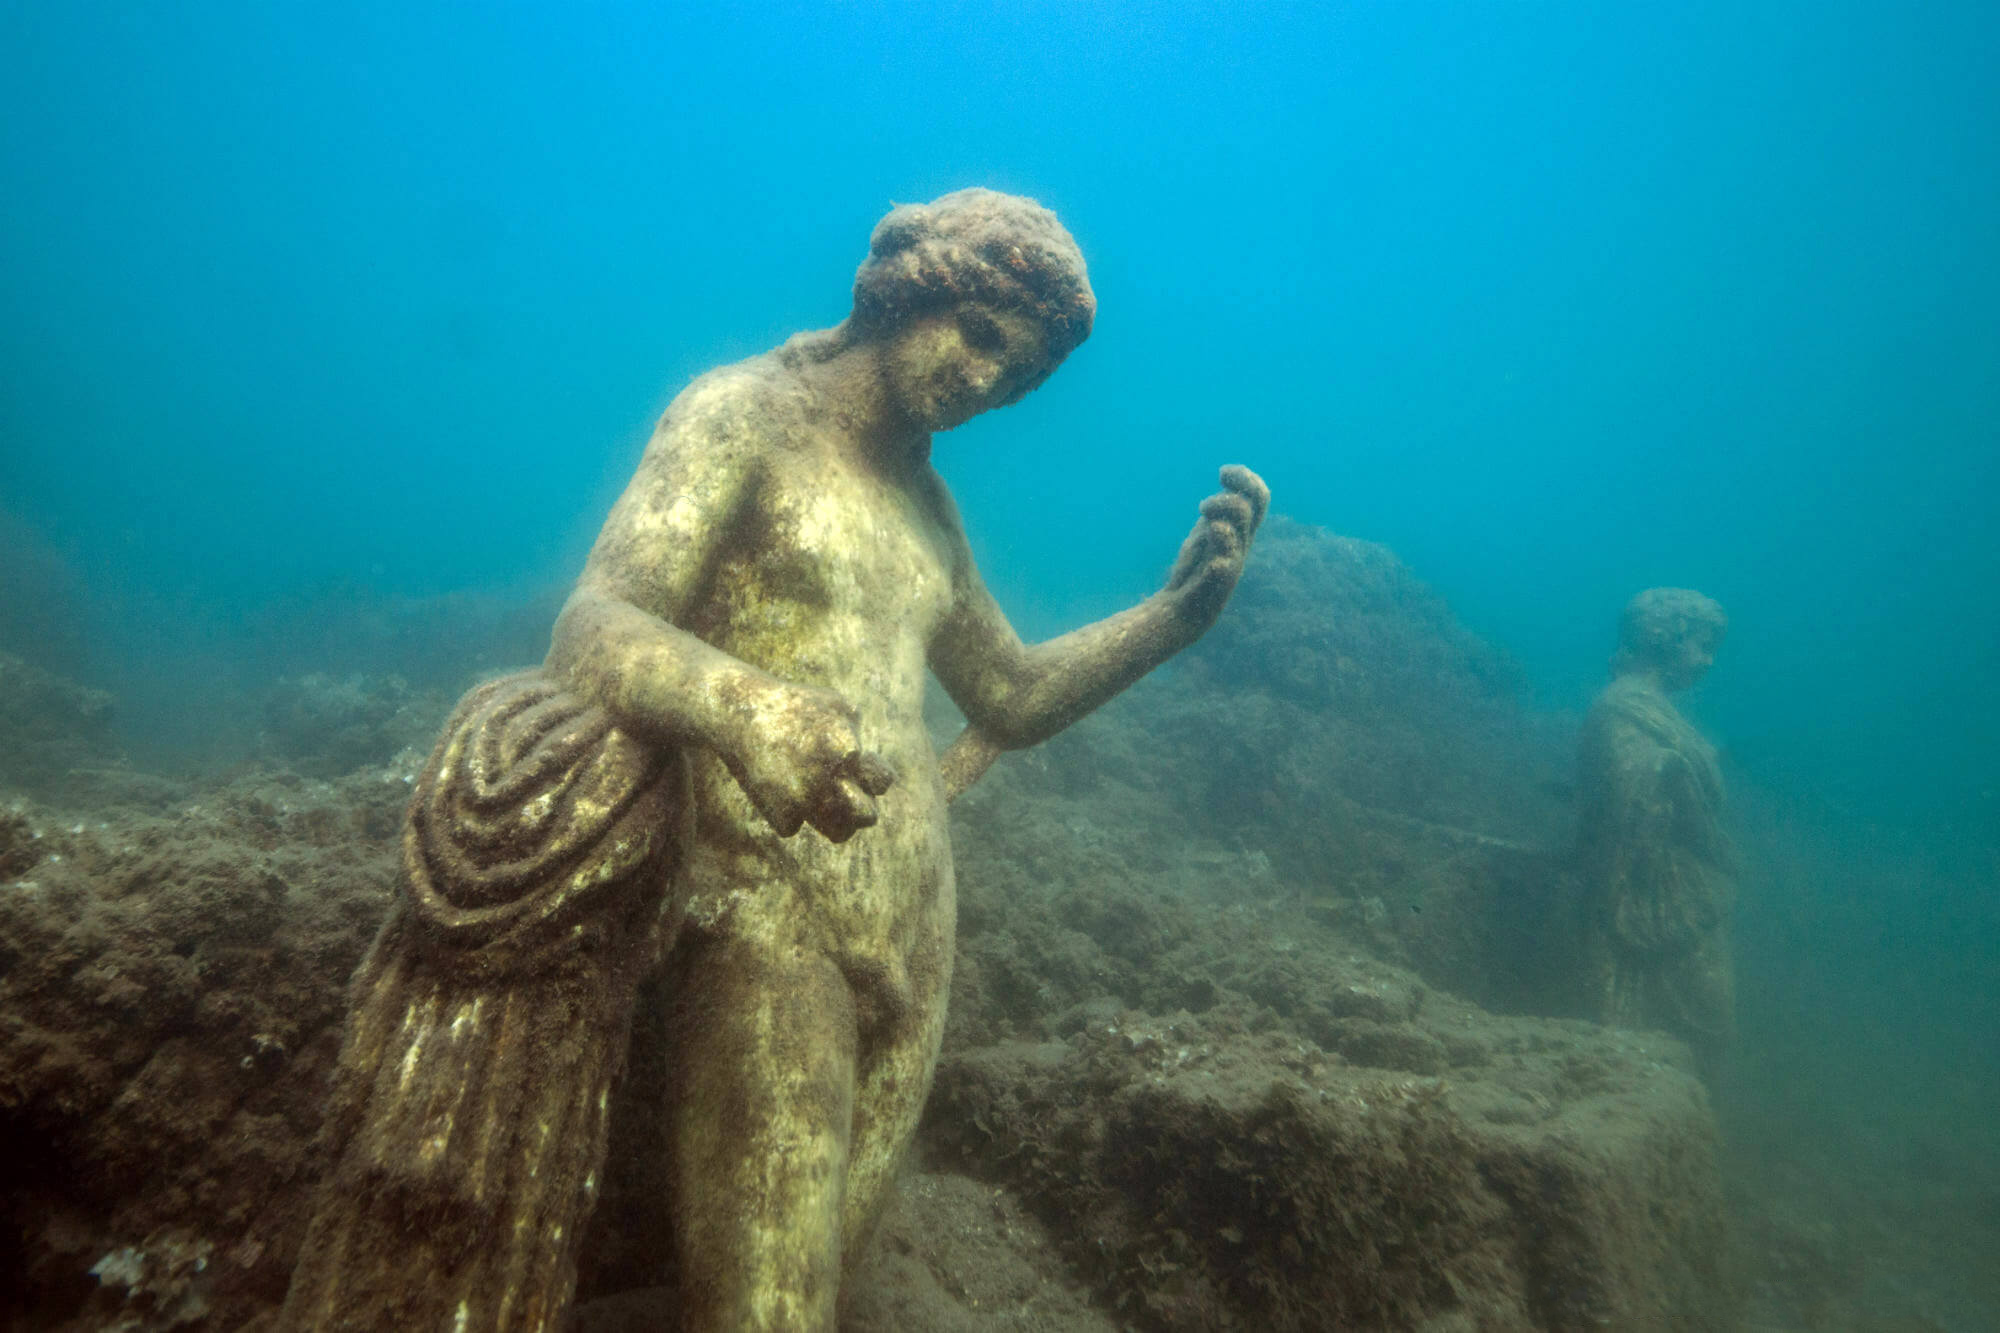 Twitter Ancient Roman Statutes Underwater At The Baiae Scuba Diving Site In Naples, Italy